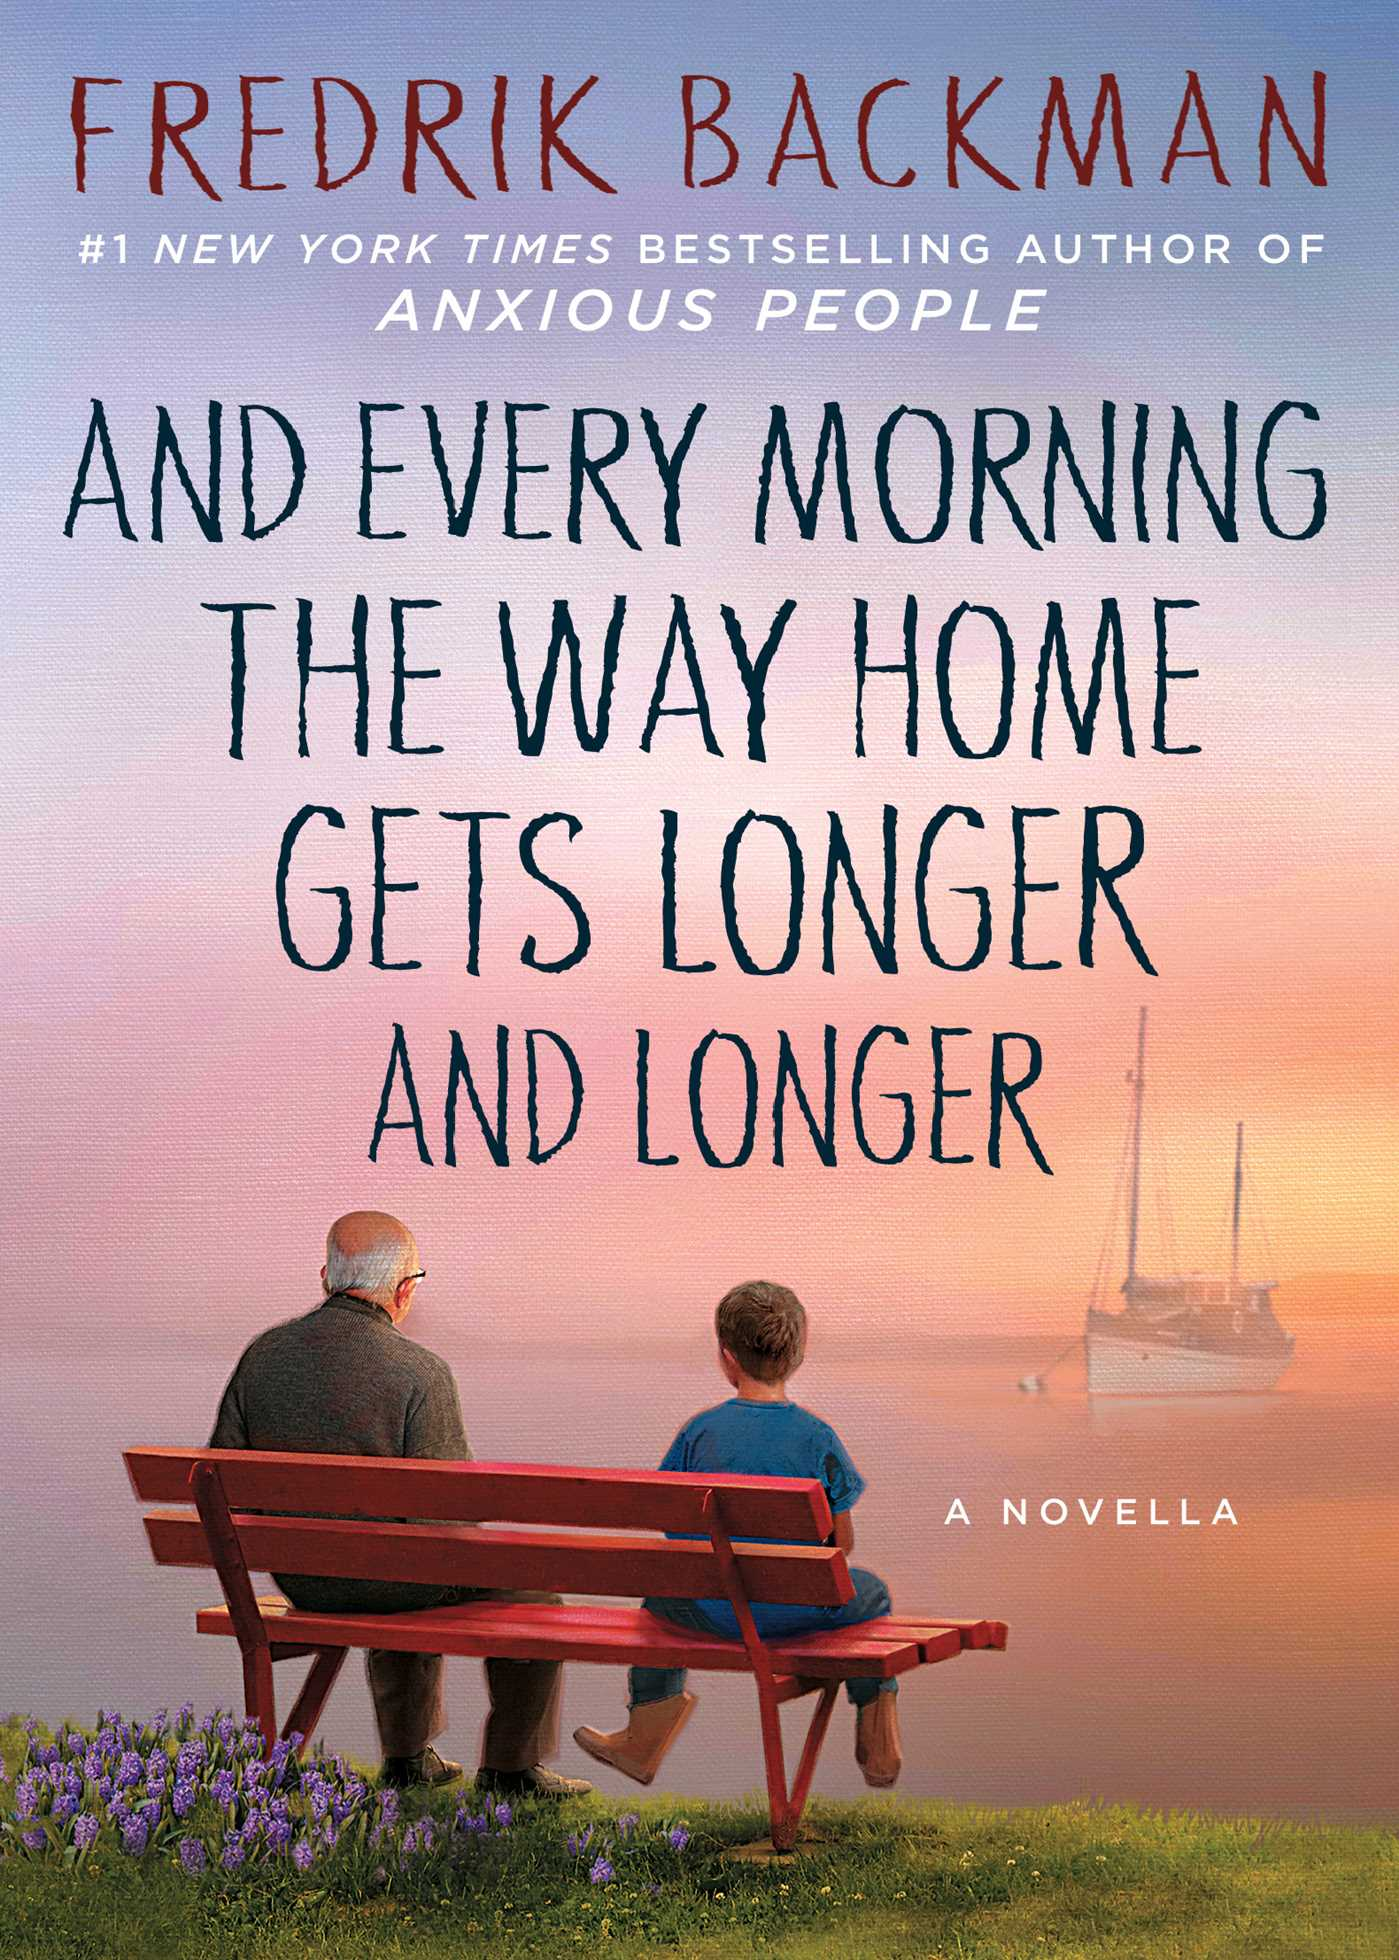 And every morning the way home gets longer and longer 9781501160578 hr